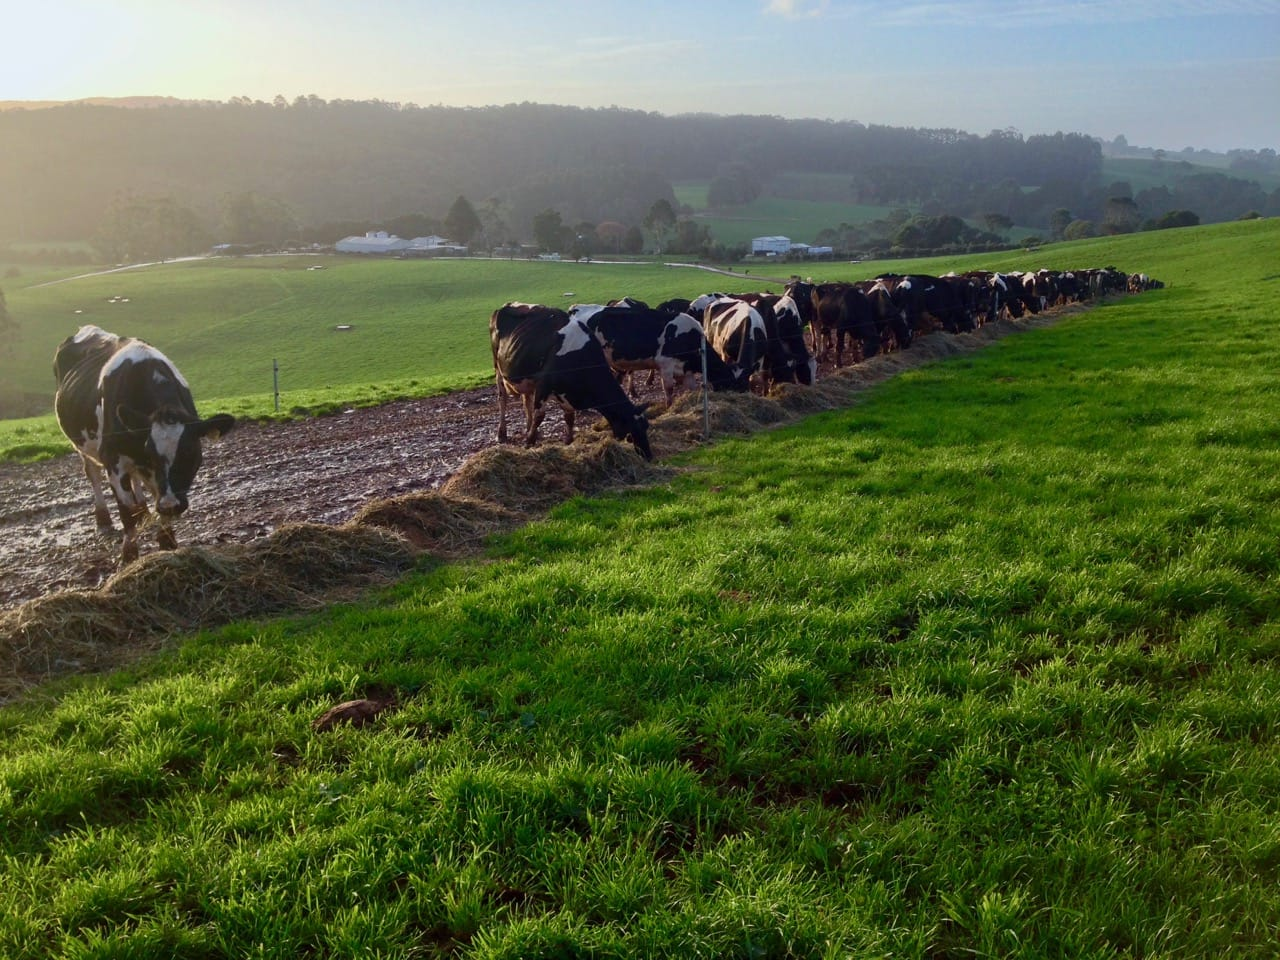 Dairy cows grazing feed under a fence to reduce feed wastage.